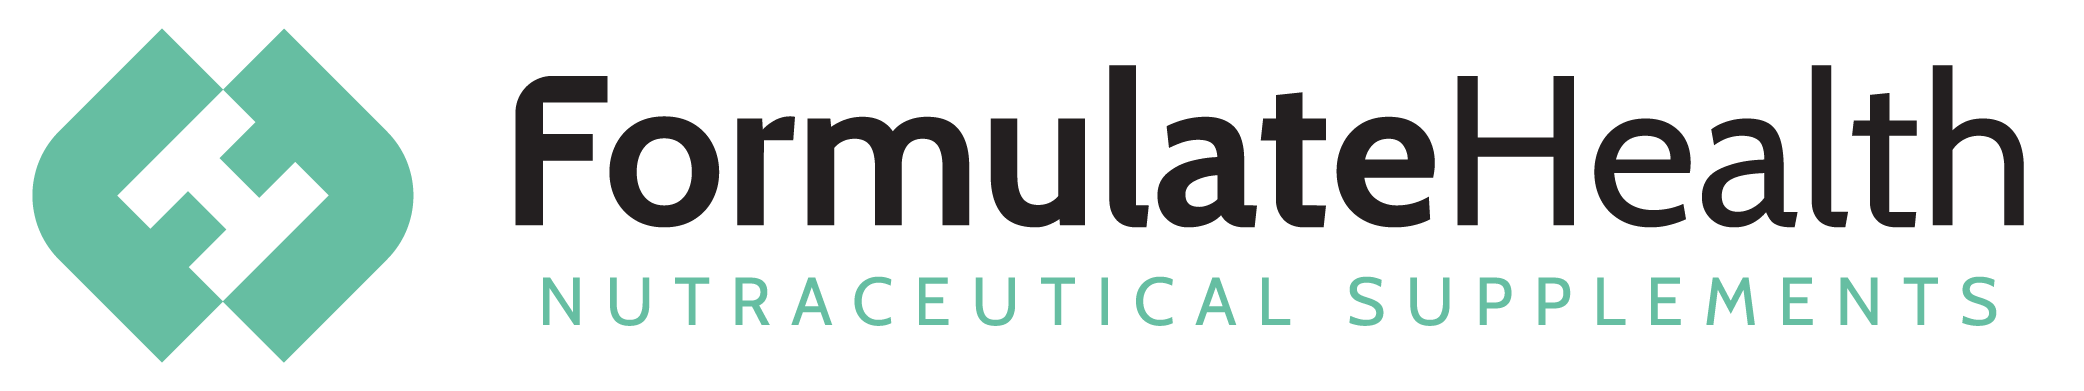 formulate-health-logo-01.png